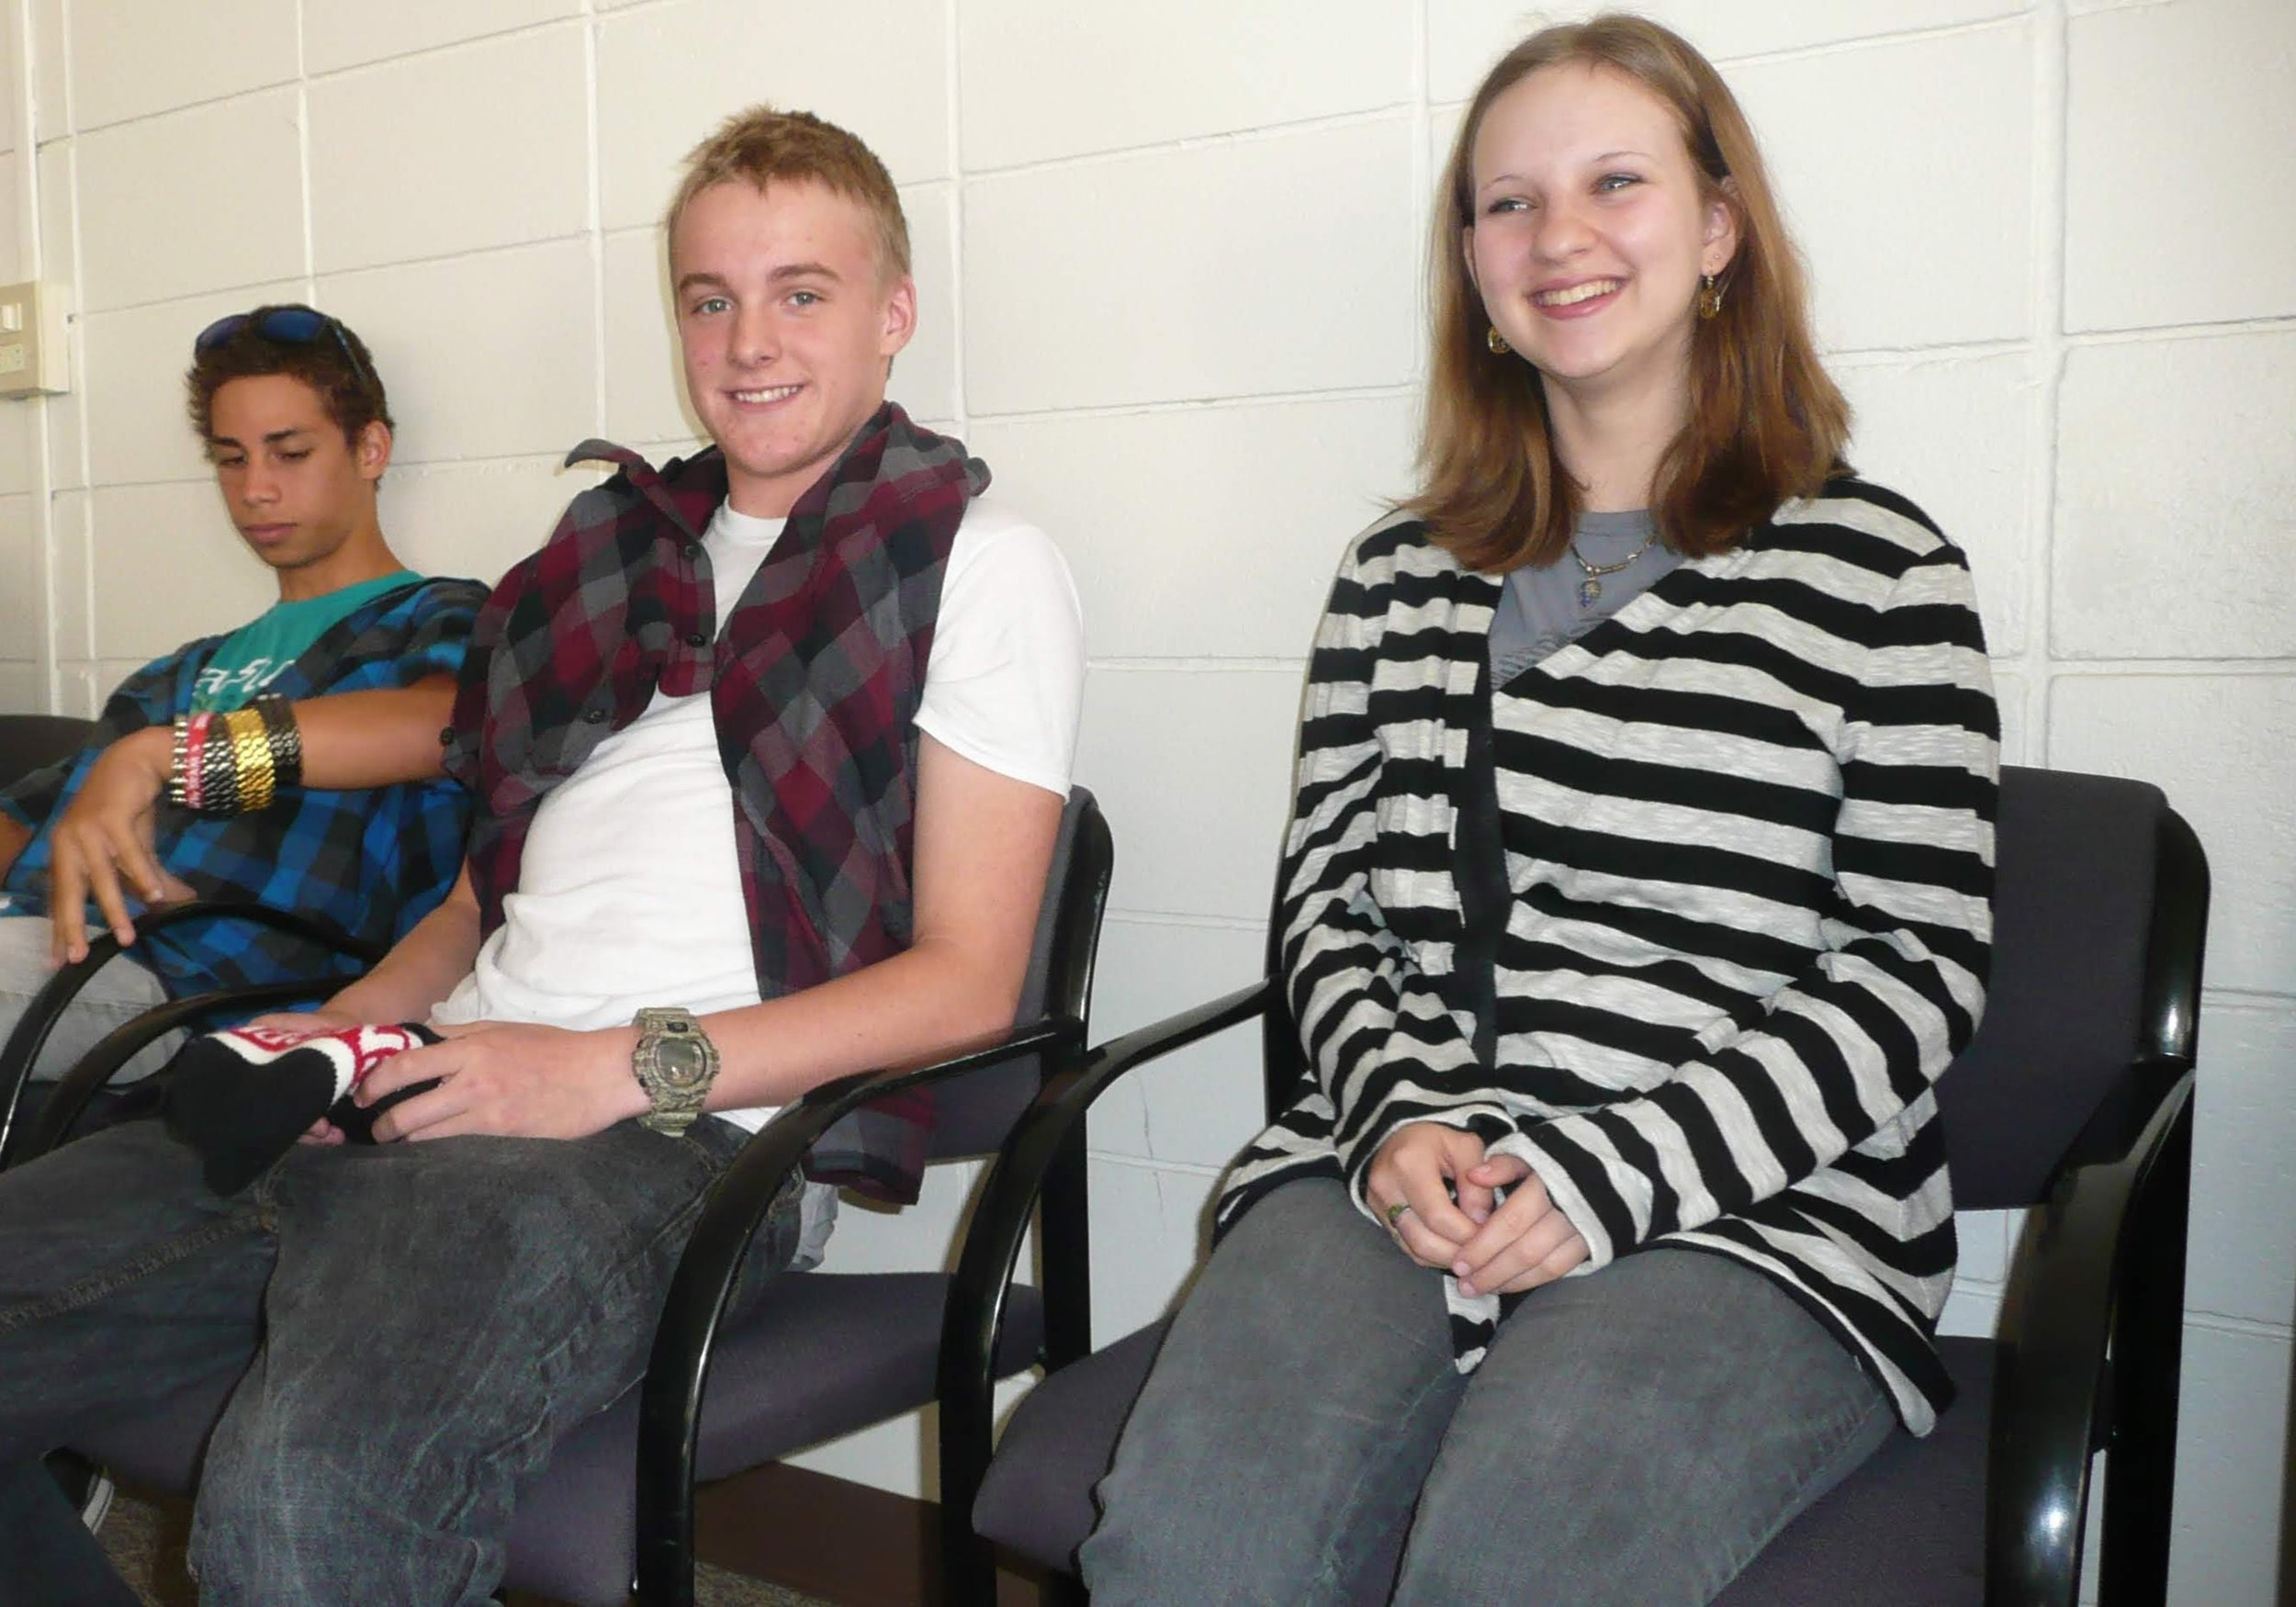 High school students smiling in class